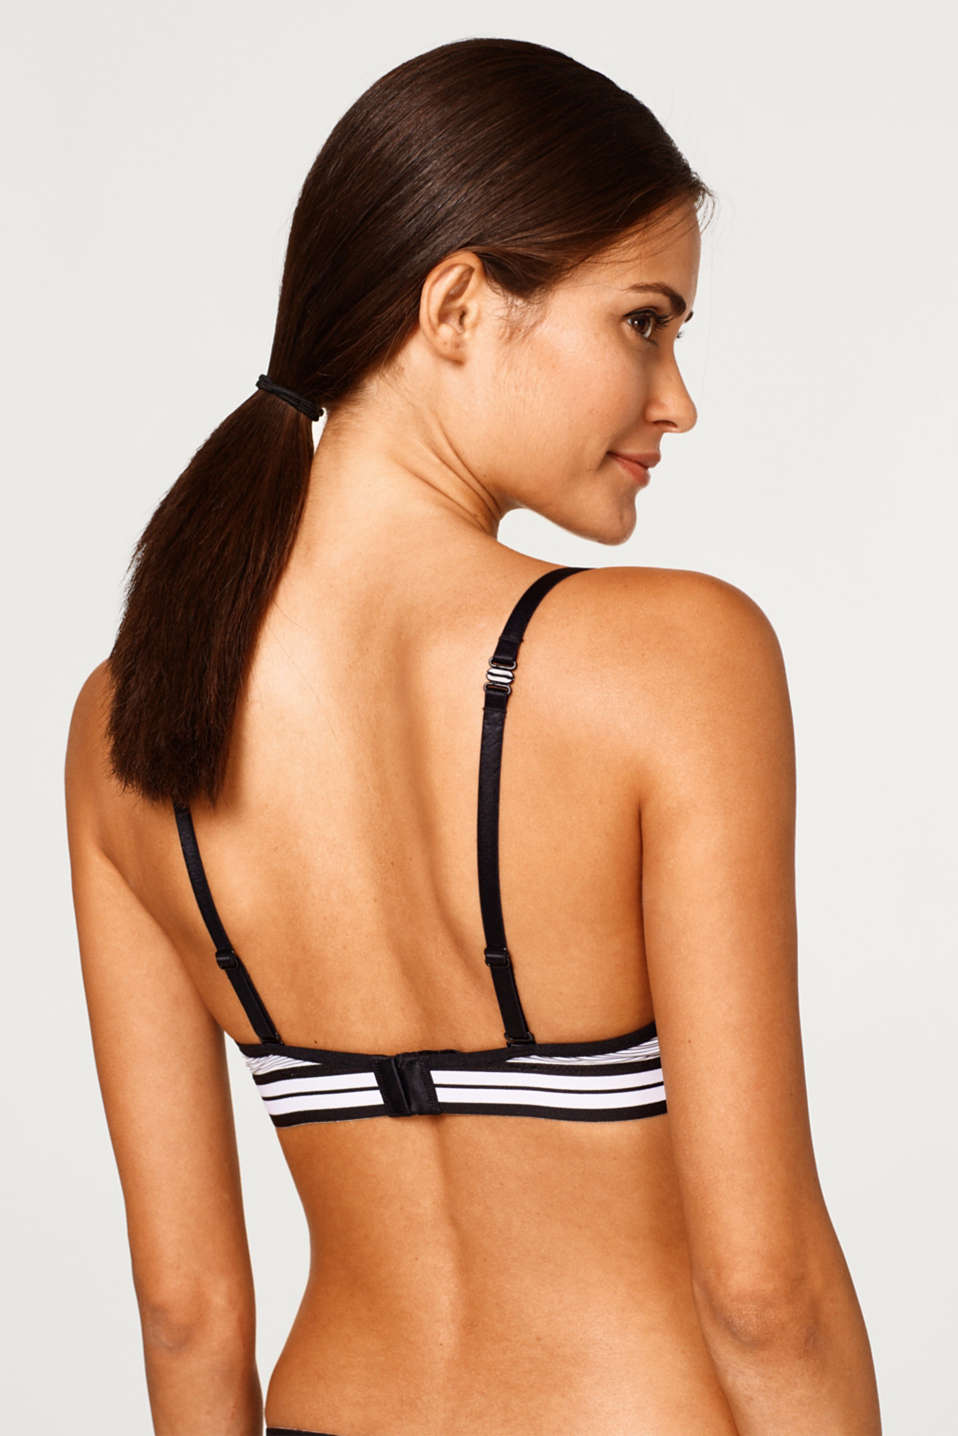 Padded bra with pinstripes and lace